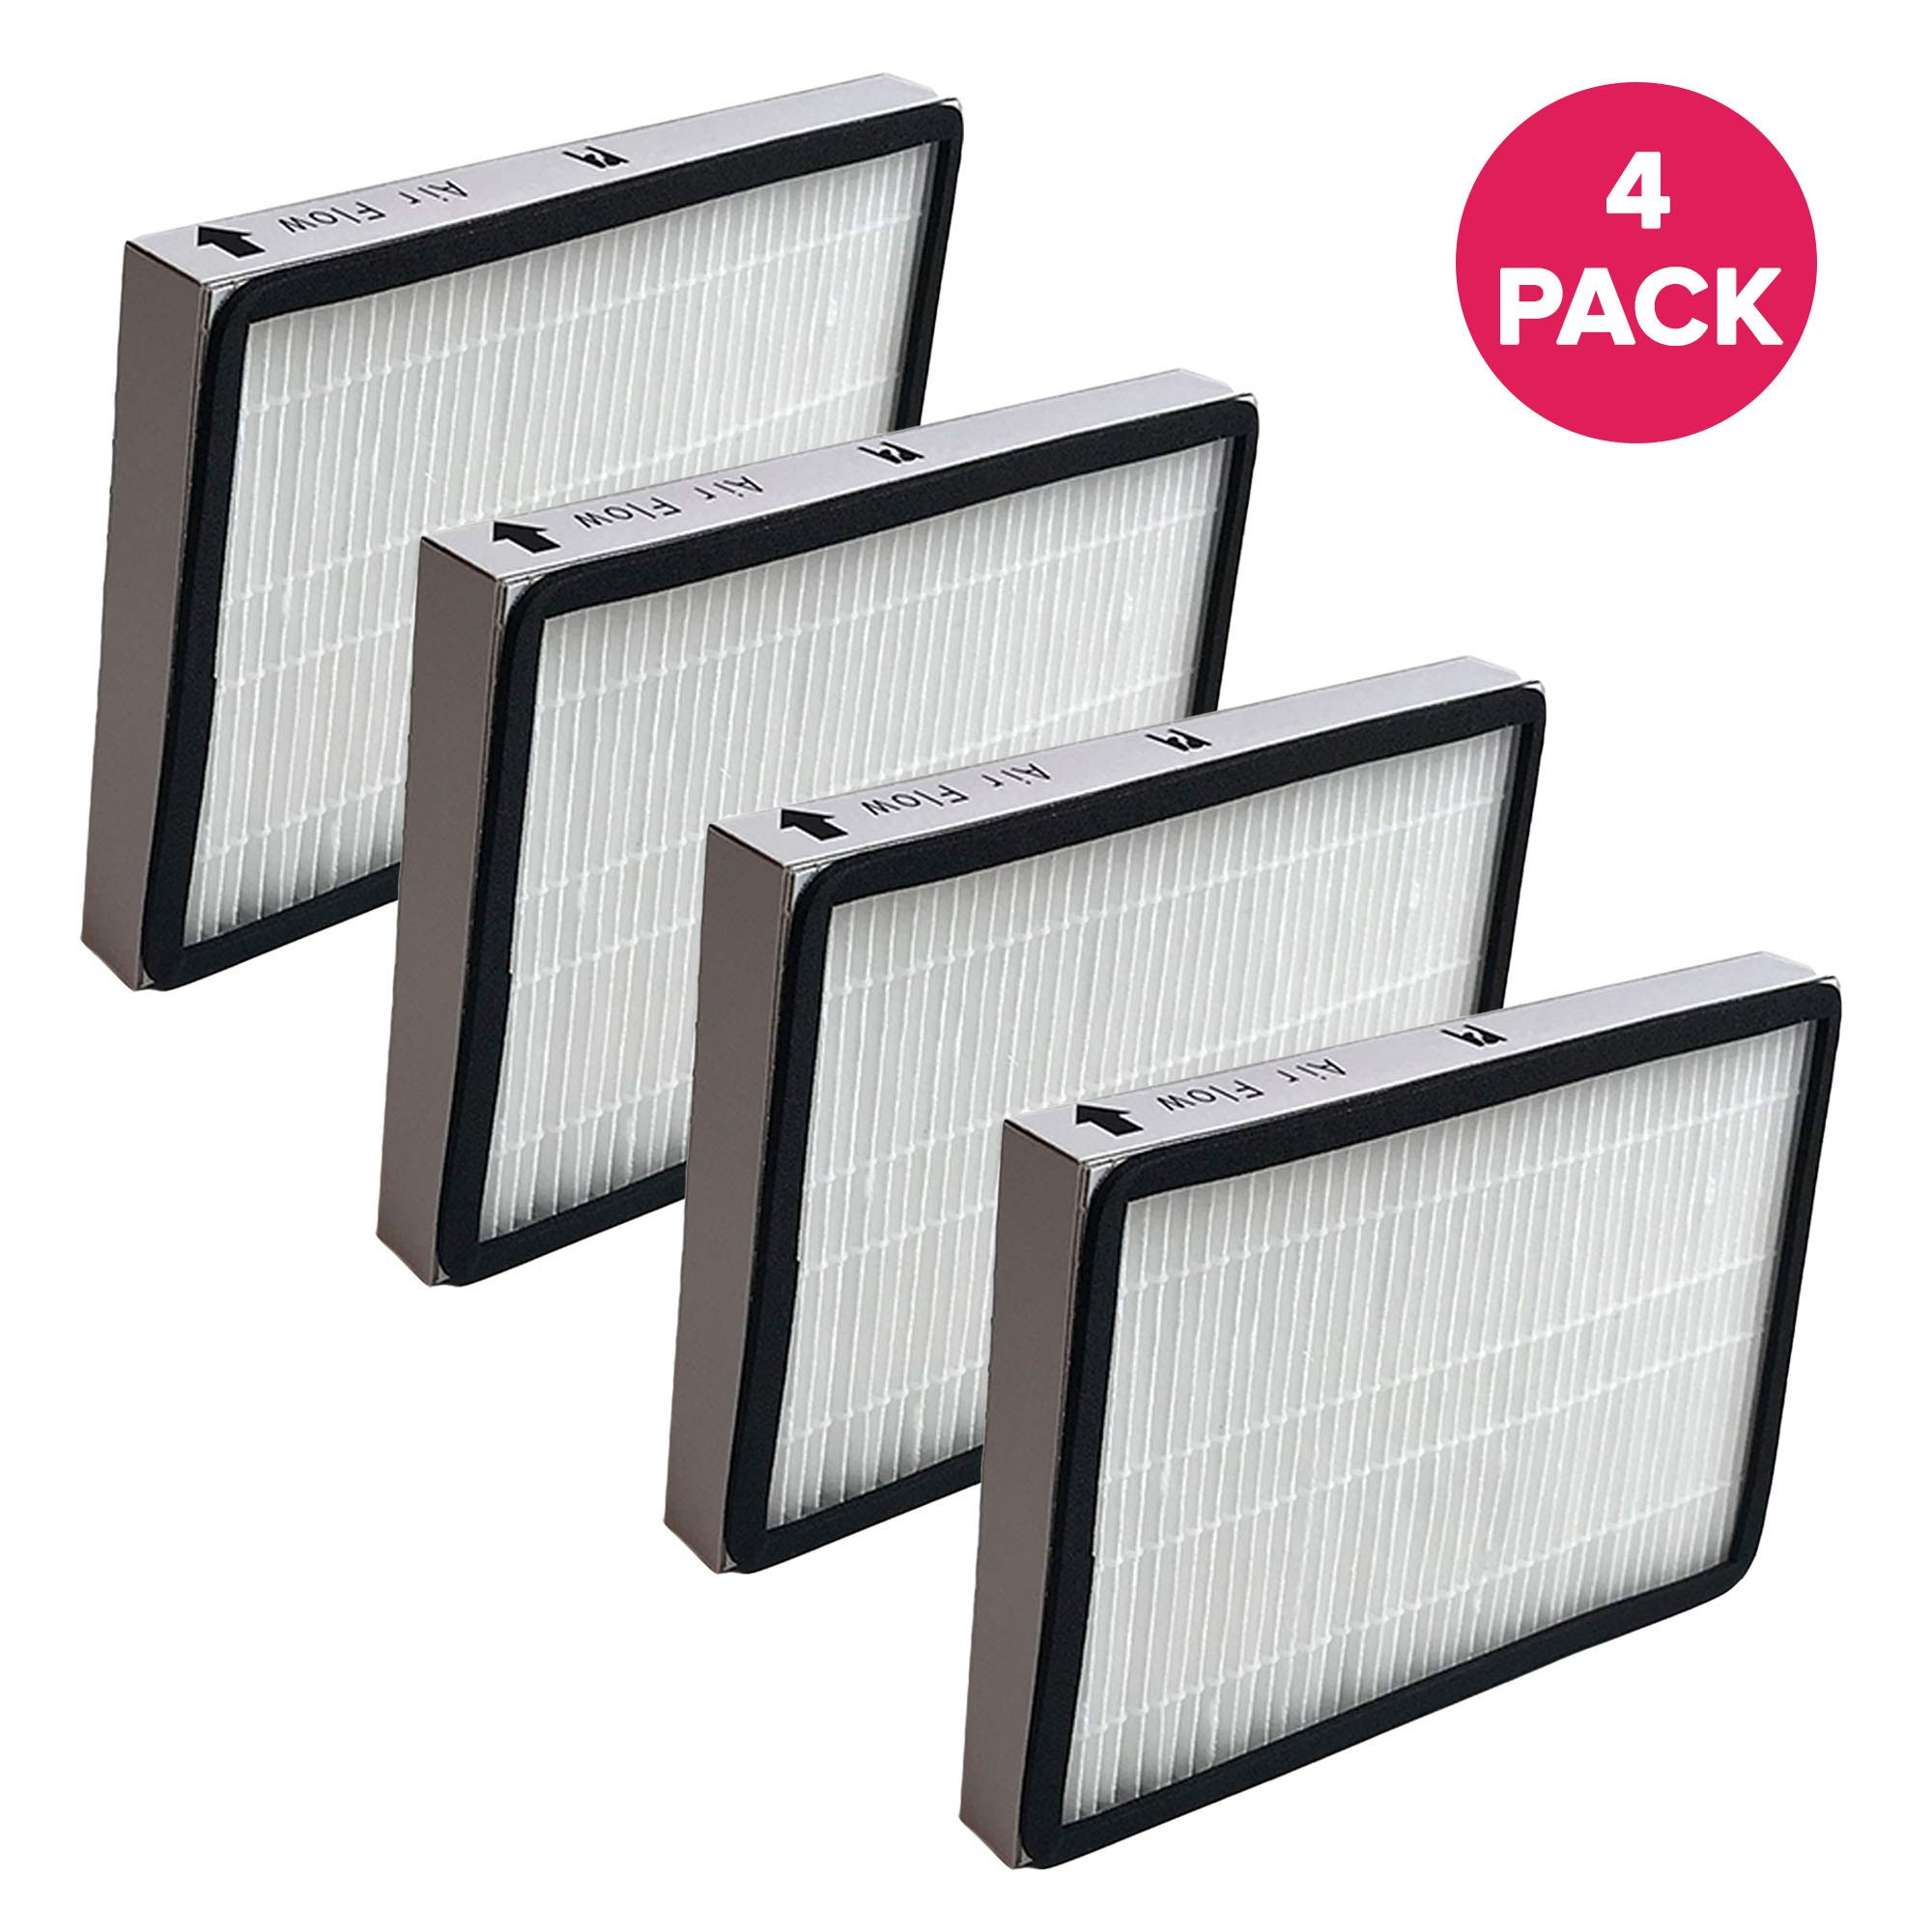 Crucial Vacuum Air Filter Replacement Part # 86889, 20-86889, 40324 - Compatible with Kenmore Vacs - Kenmore EF1 HEPA Style Filter Fits Whispertone & Progressive - Cardboard, Reuseable (4 Pack)